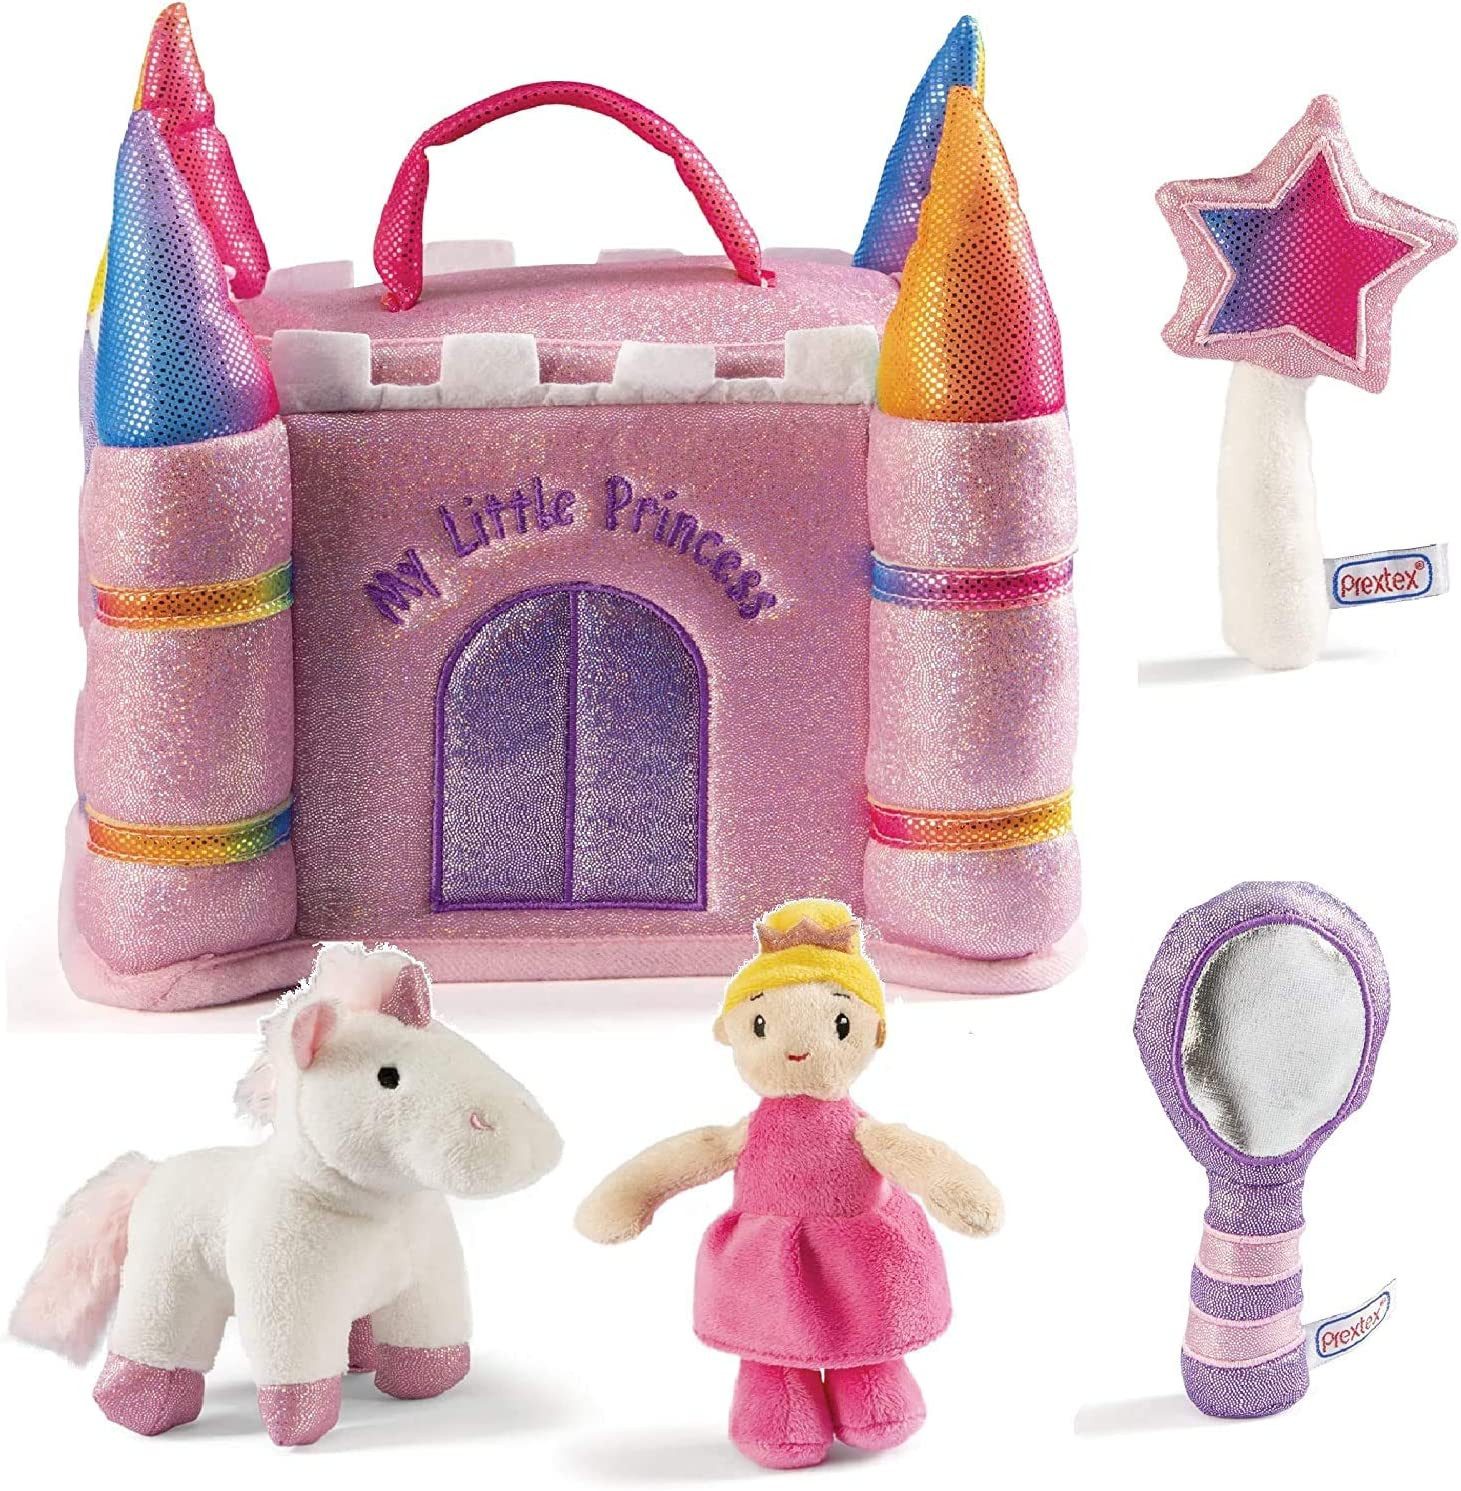 Prextex Princess Castle House Playset with Plush Unicorn, Wand, Mirror and Princess Toys for 1 Year Old Girls